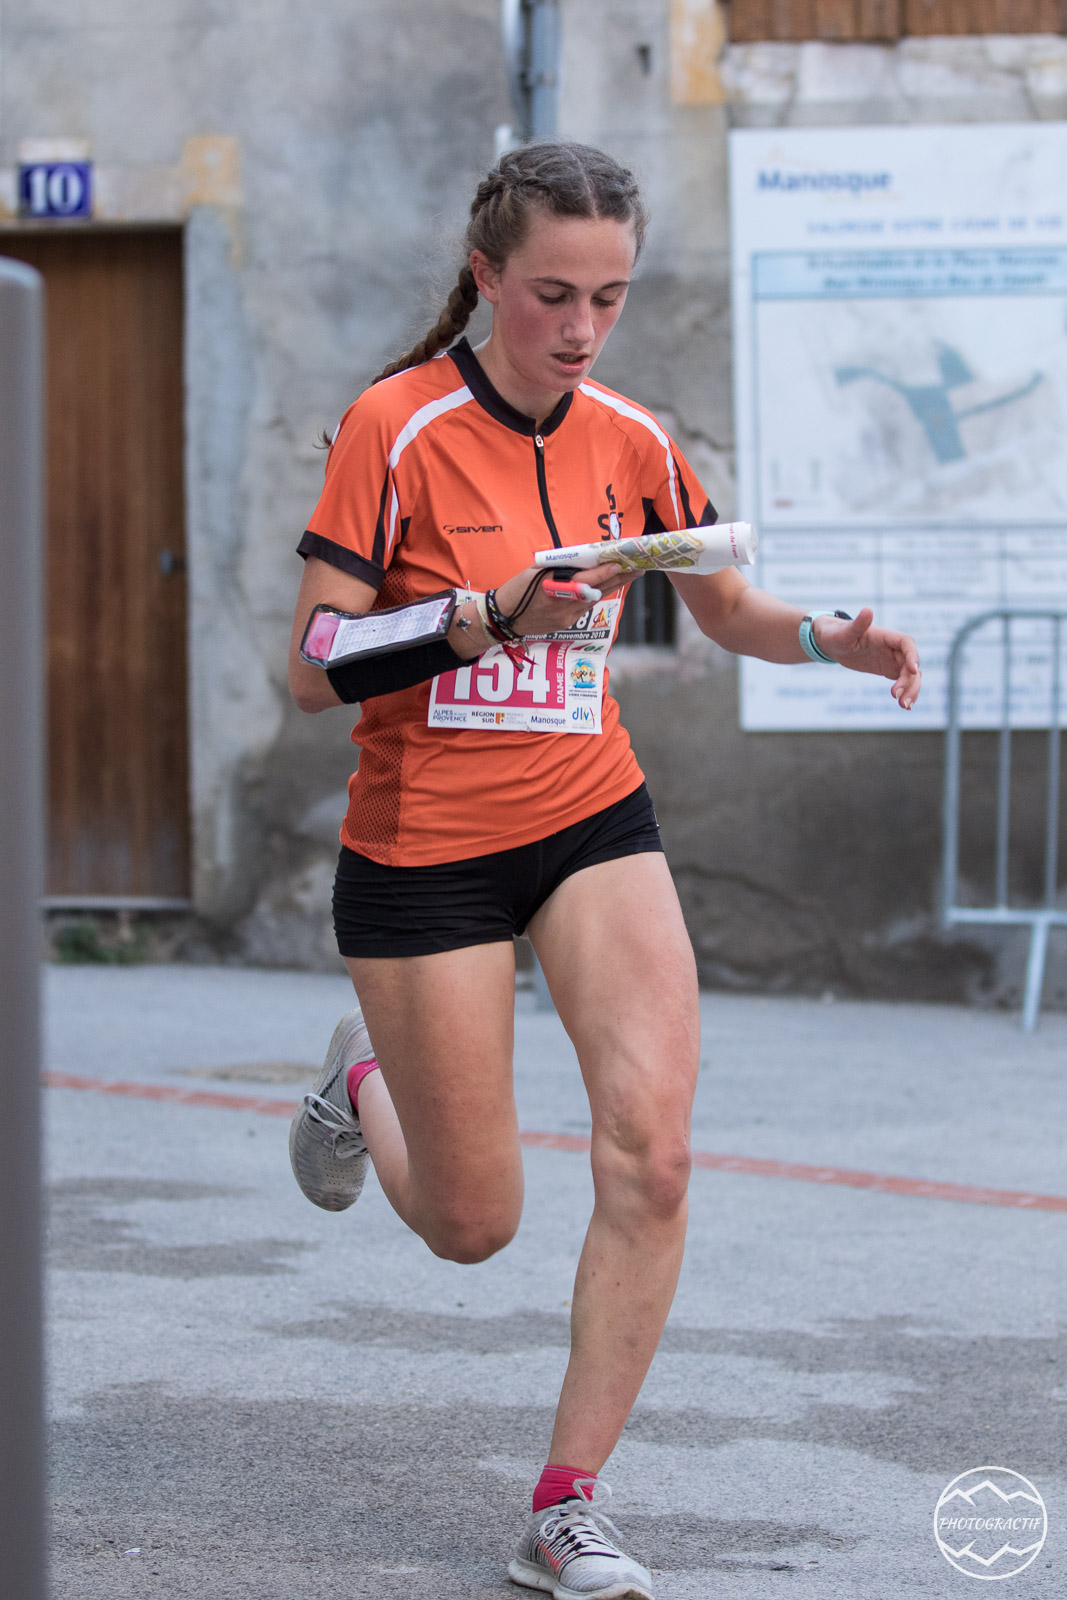 CDF Sprint CO Manosque 2018 (51)